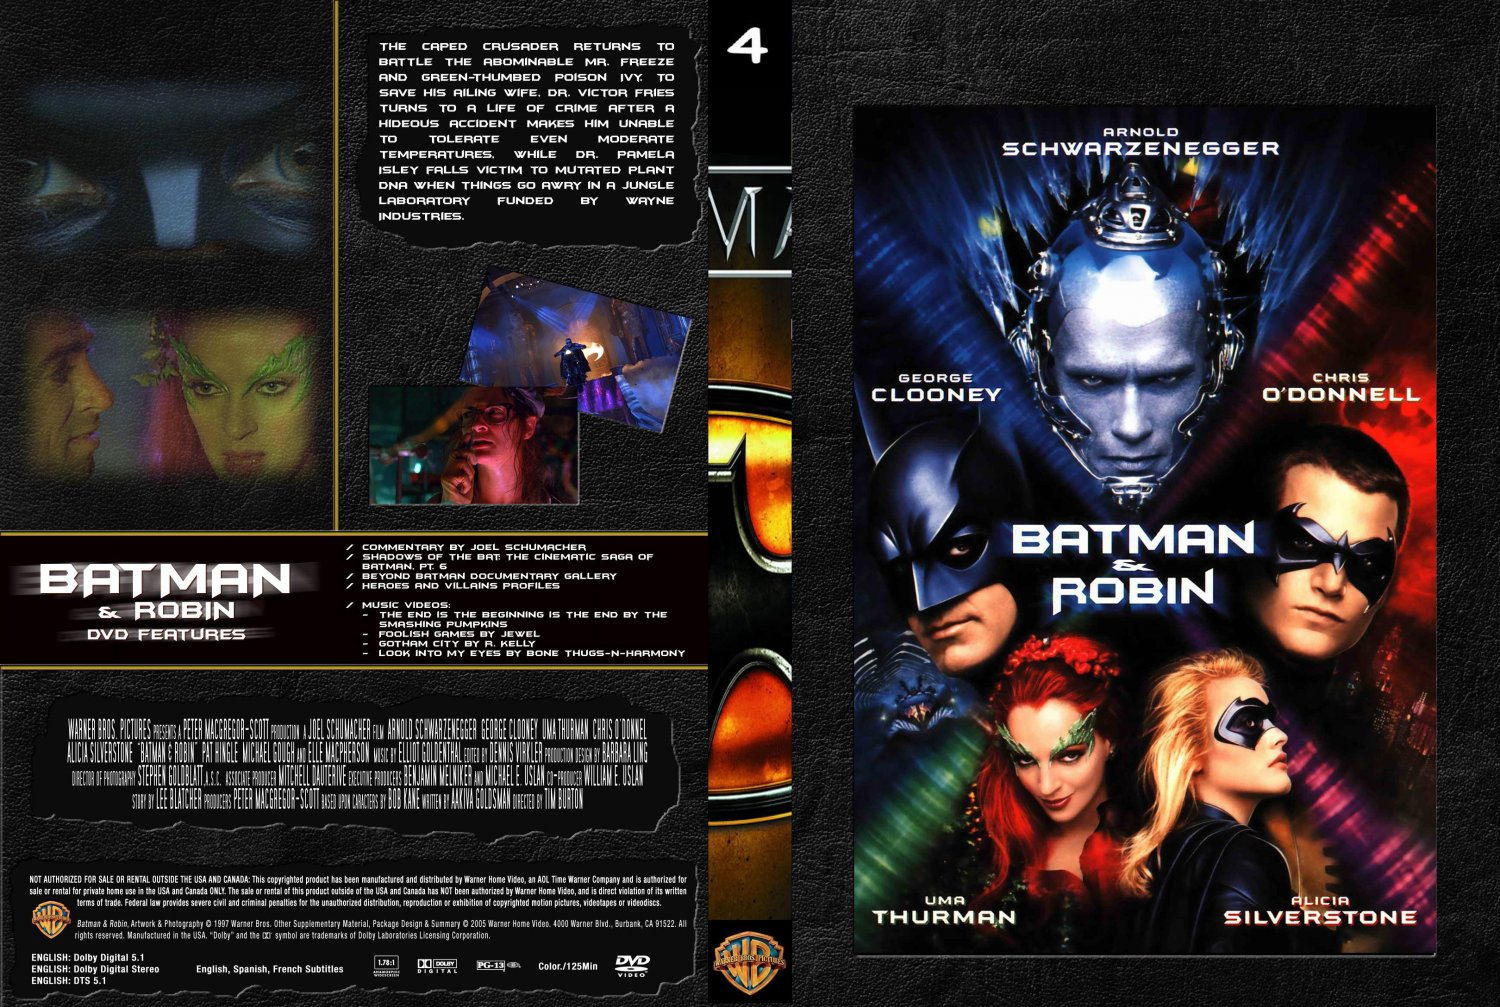 Batman And Robin DVD Cover